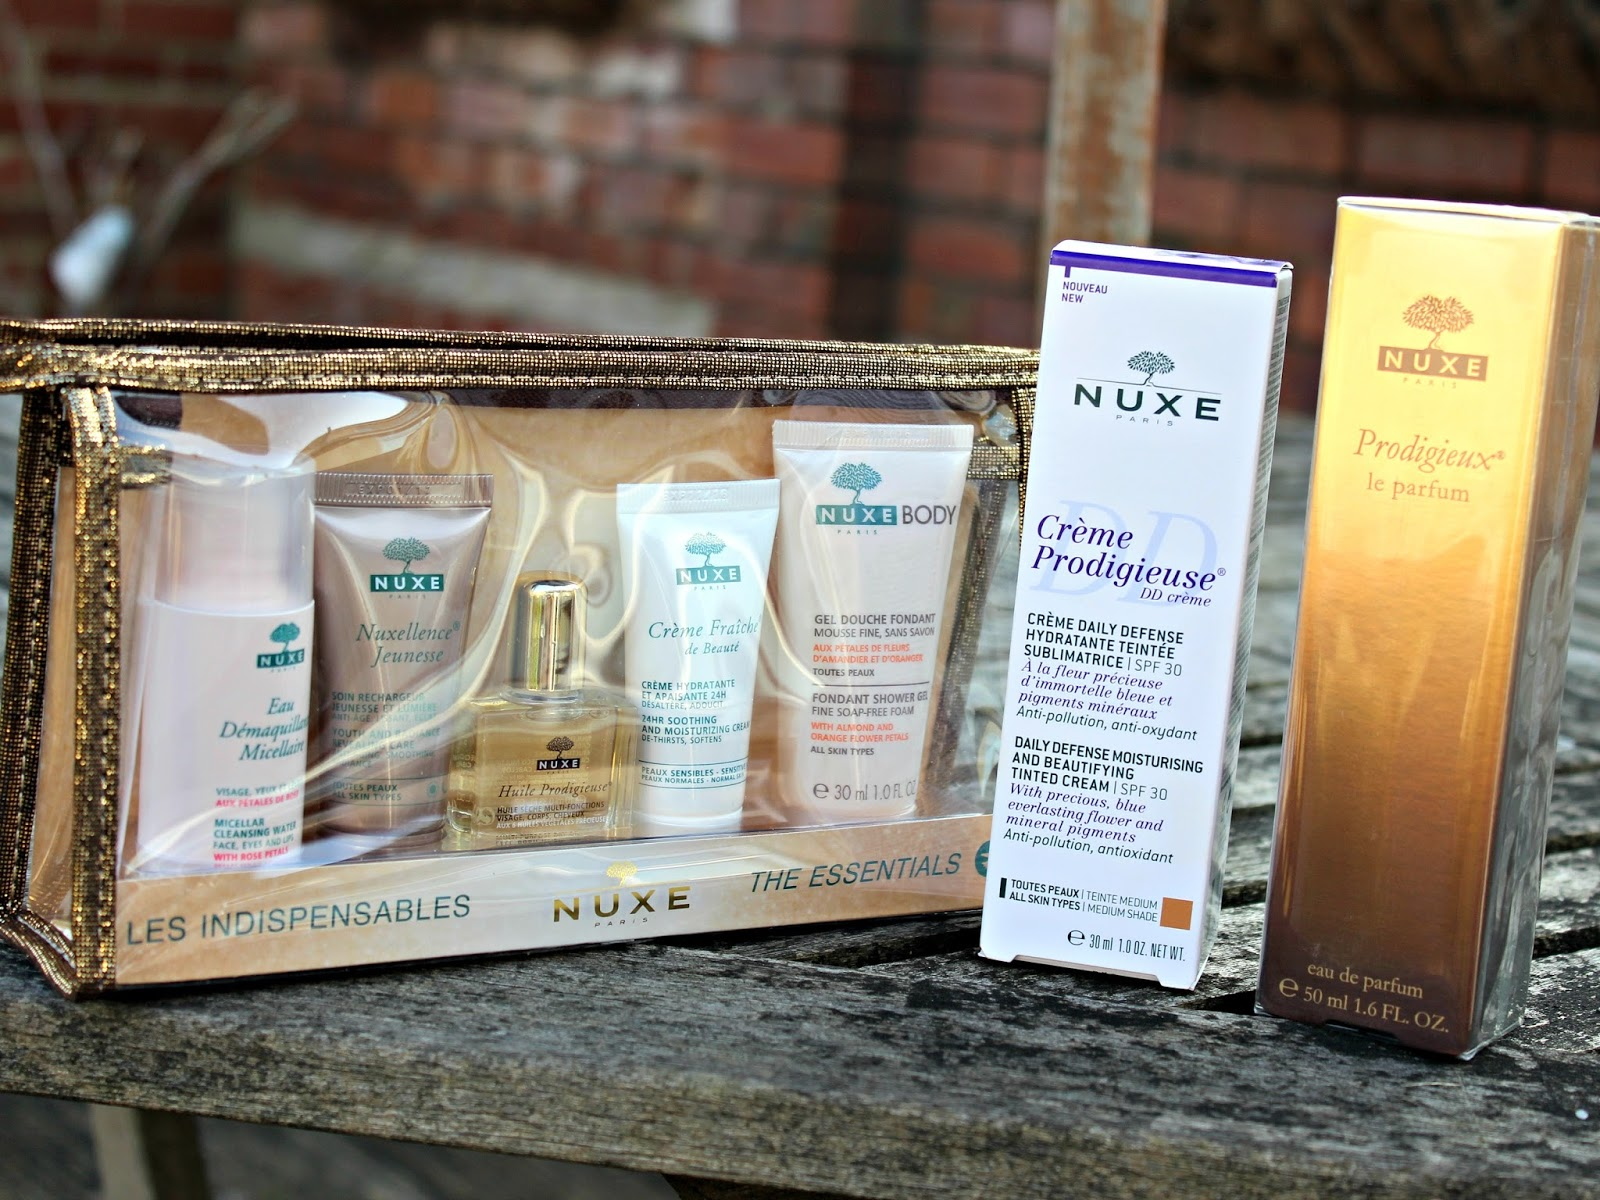 A picture of the Nuxe Travel Set, DD Cream and Prodigieux  Le Parfum